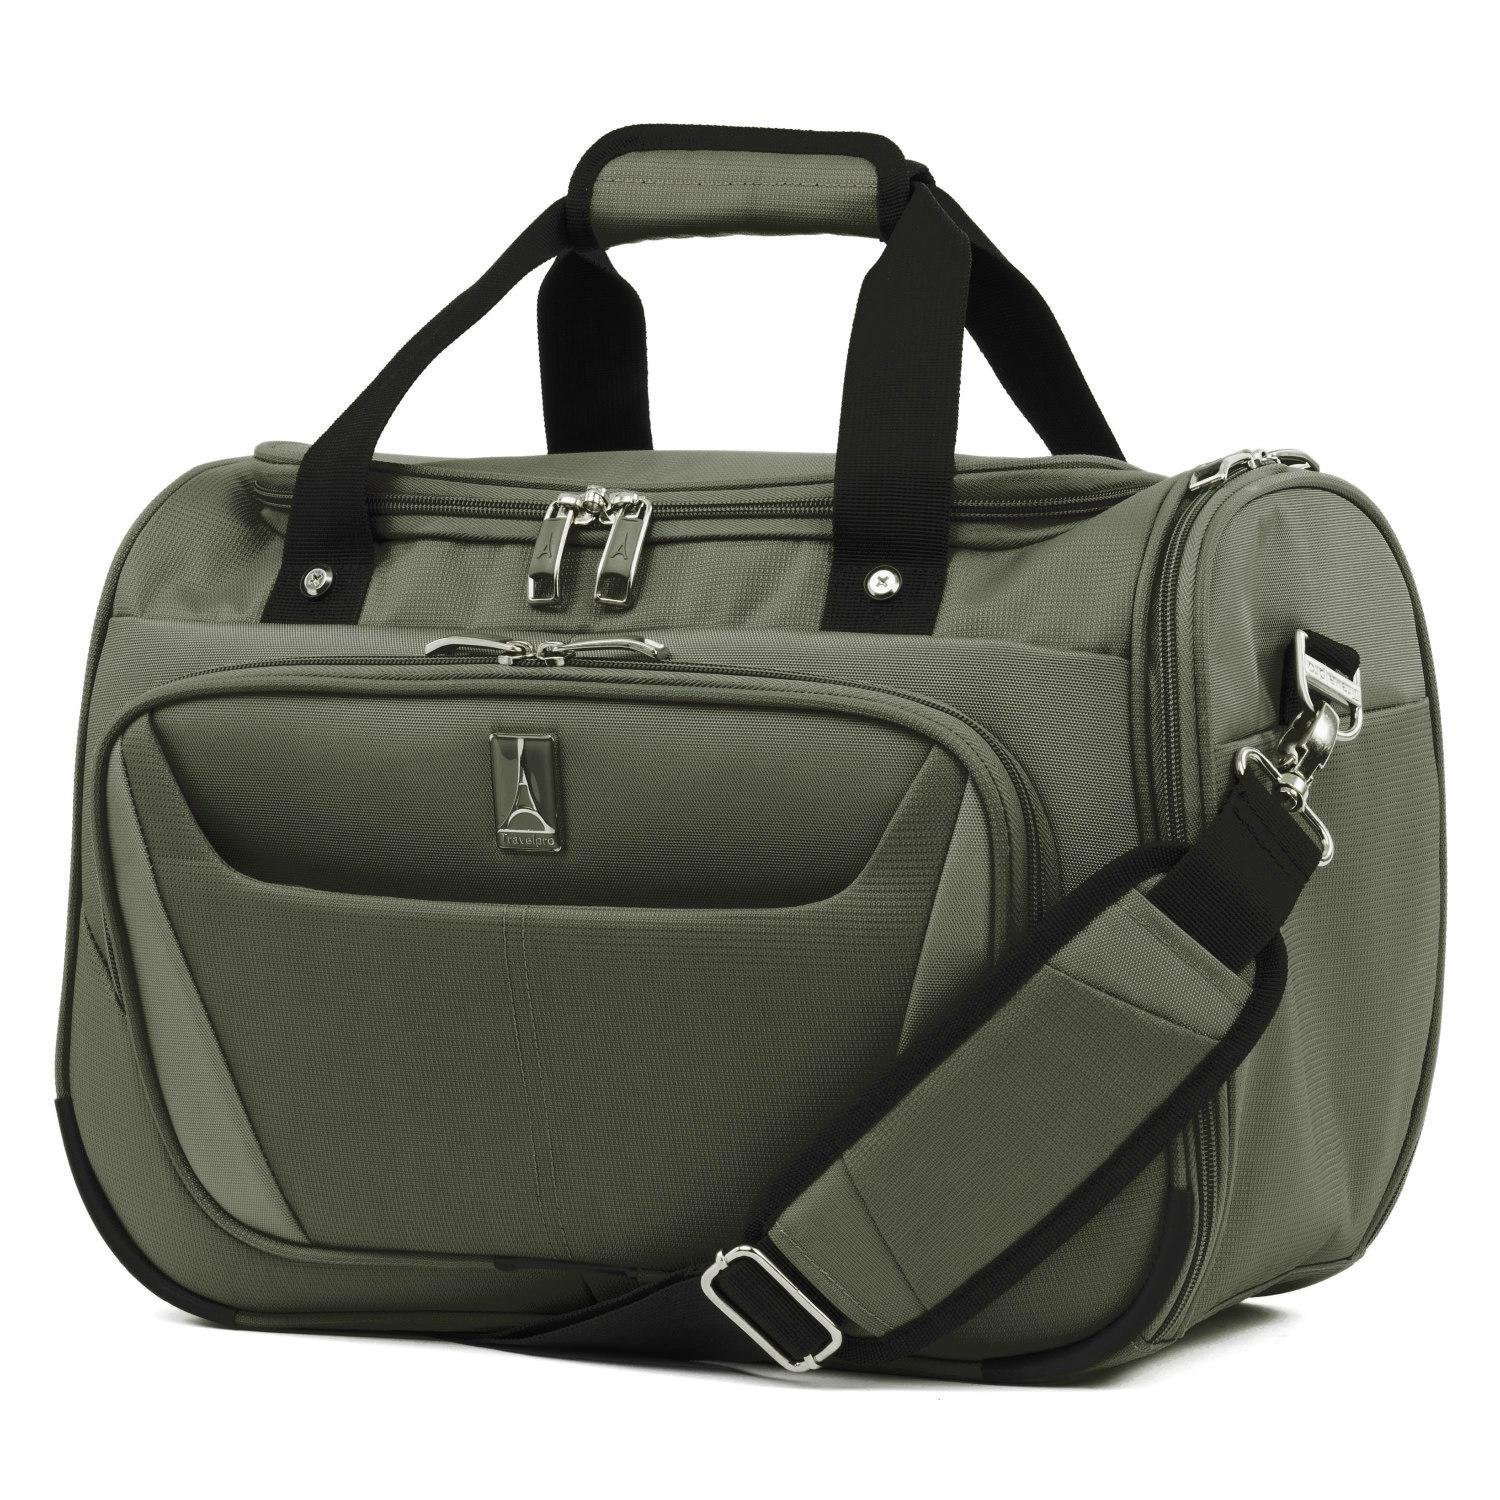 Travelpro Luggage Maxlite 5 18'' Lightweight Carry-on Under Seat Tote Travel, Slate Green, One Size